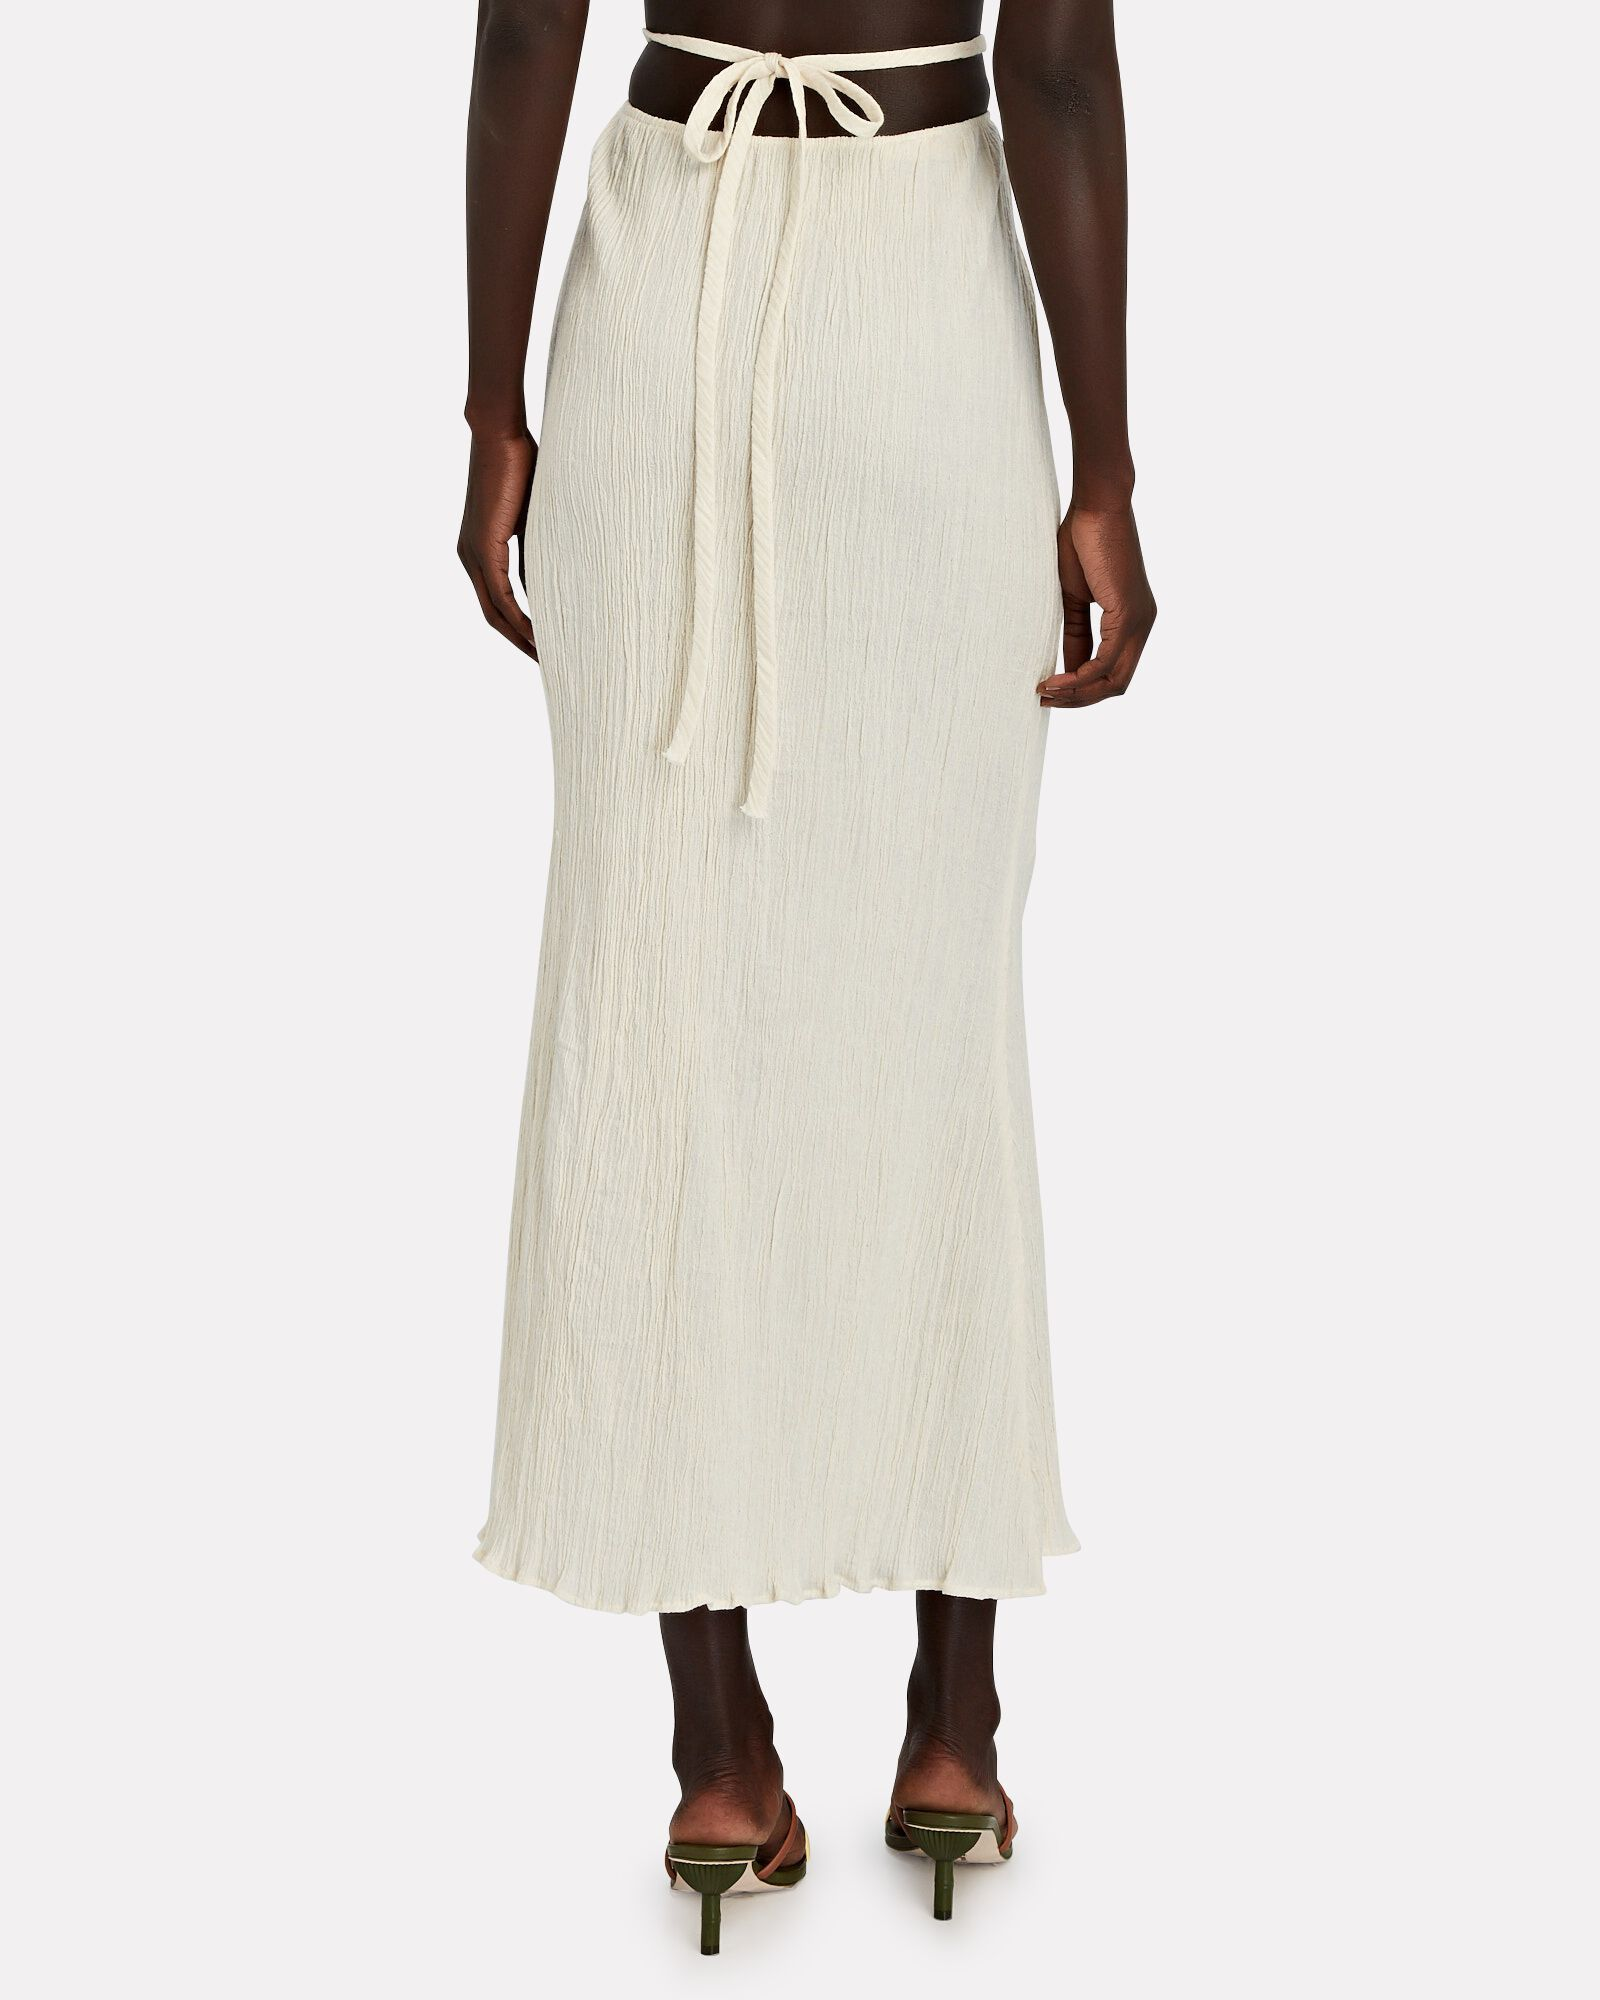 Delilah Convertible Cotton Maxi Skirt, IVORY, hi-res